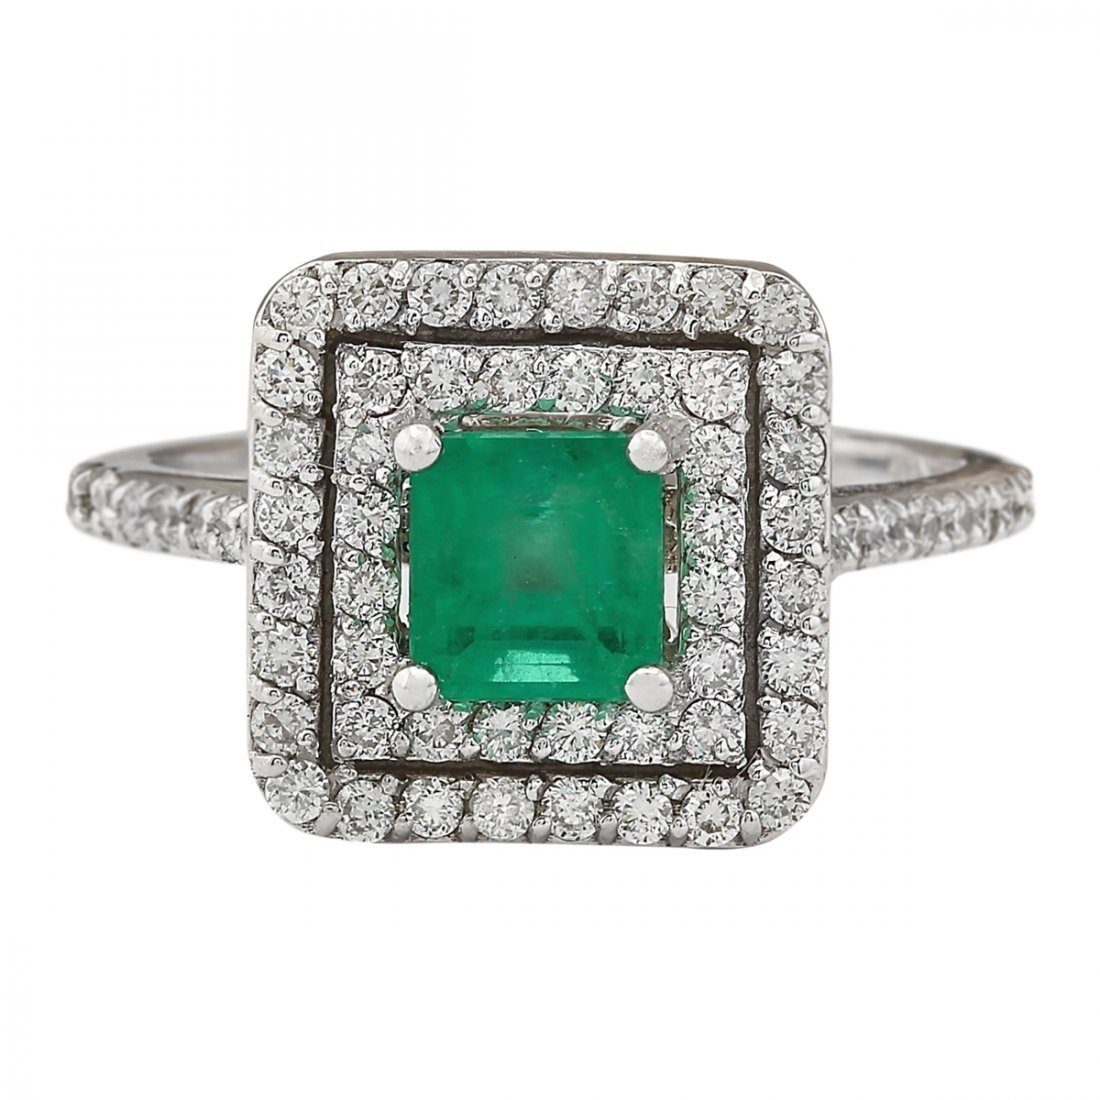 1.70 CTW Natural Emerald And Diamond Ring In 14k White